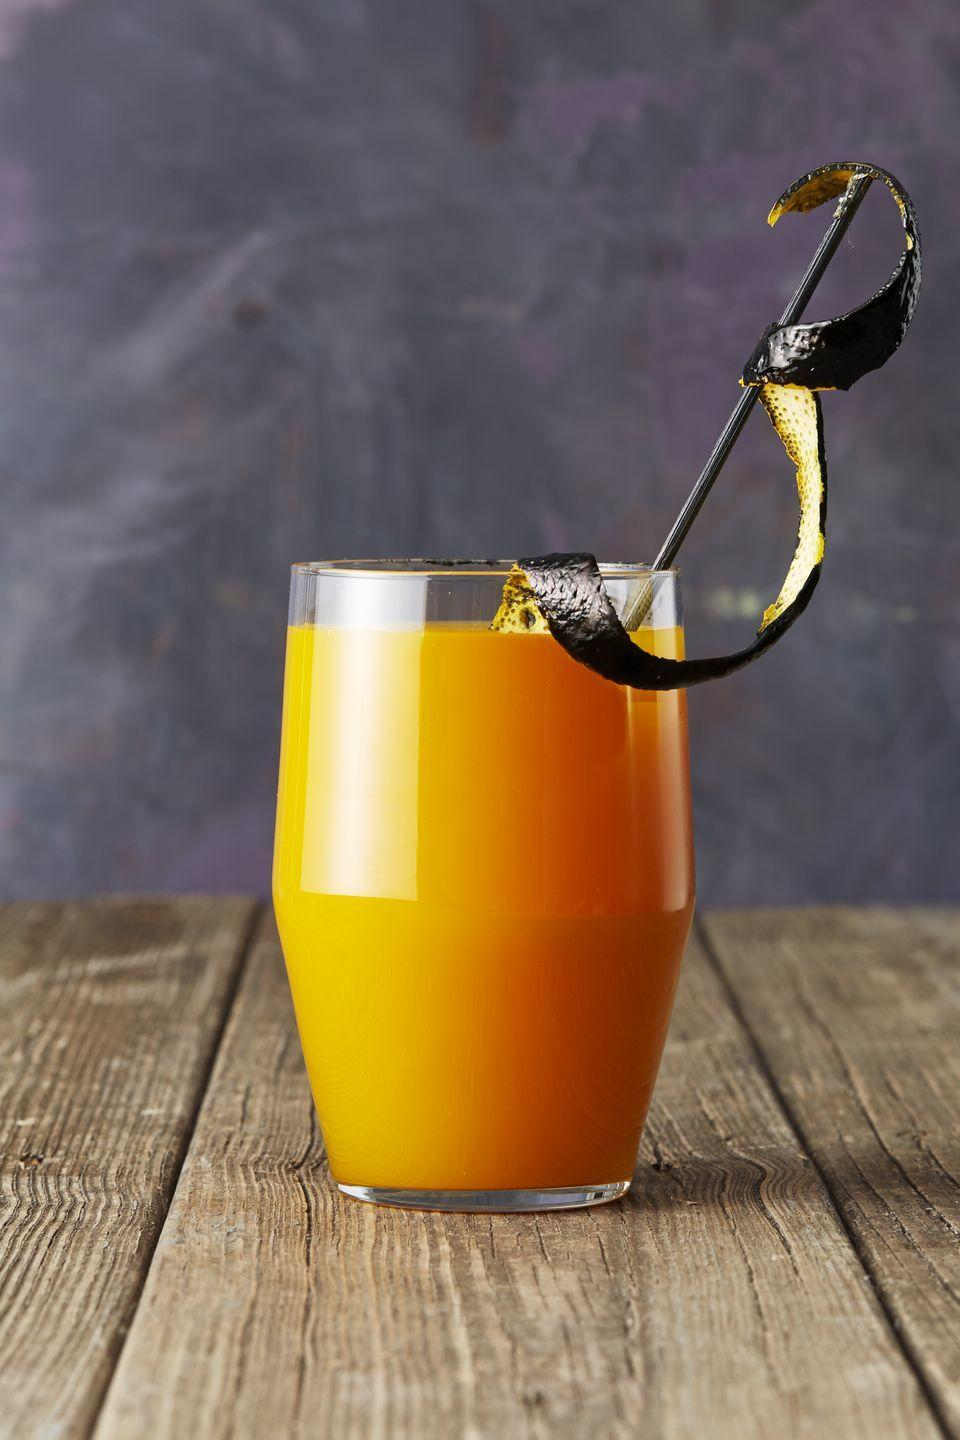 "<p>Garnish this party potion the Halloween way by painting orange peel strips with black gel food coloring. </p><p><em><a href=""https://www.goodhousekeeping.com/food-recipes/a46066/apricot-bourbon-brew-recipe/"" rel=""nofollow noopener"" target=""_blank"" data-ylk=""slk:Get the recipe for Apricot Bourbon Brew »"" class=""link rapid-noclick-resp"">Get the recipe for Apricot Bourbon Brew »</a></em><br></p>"